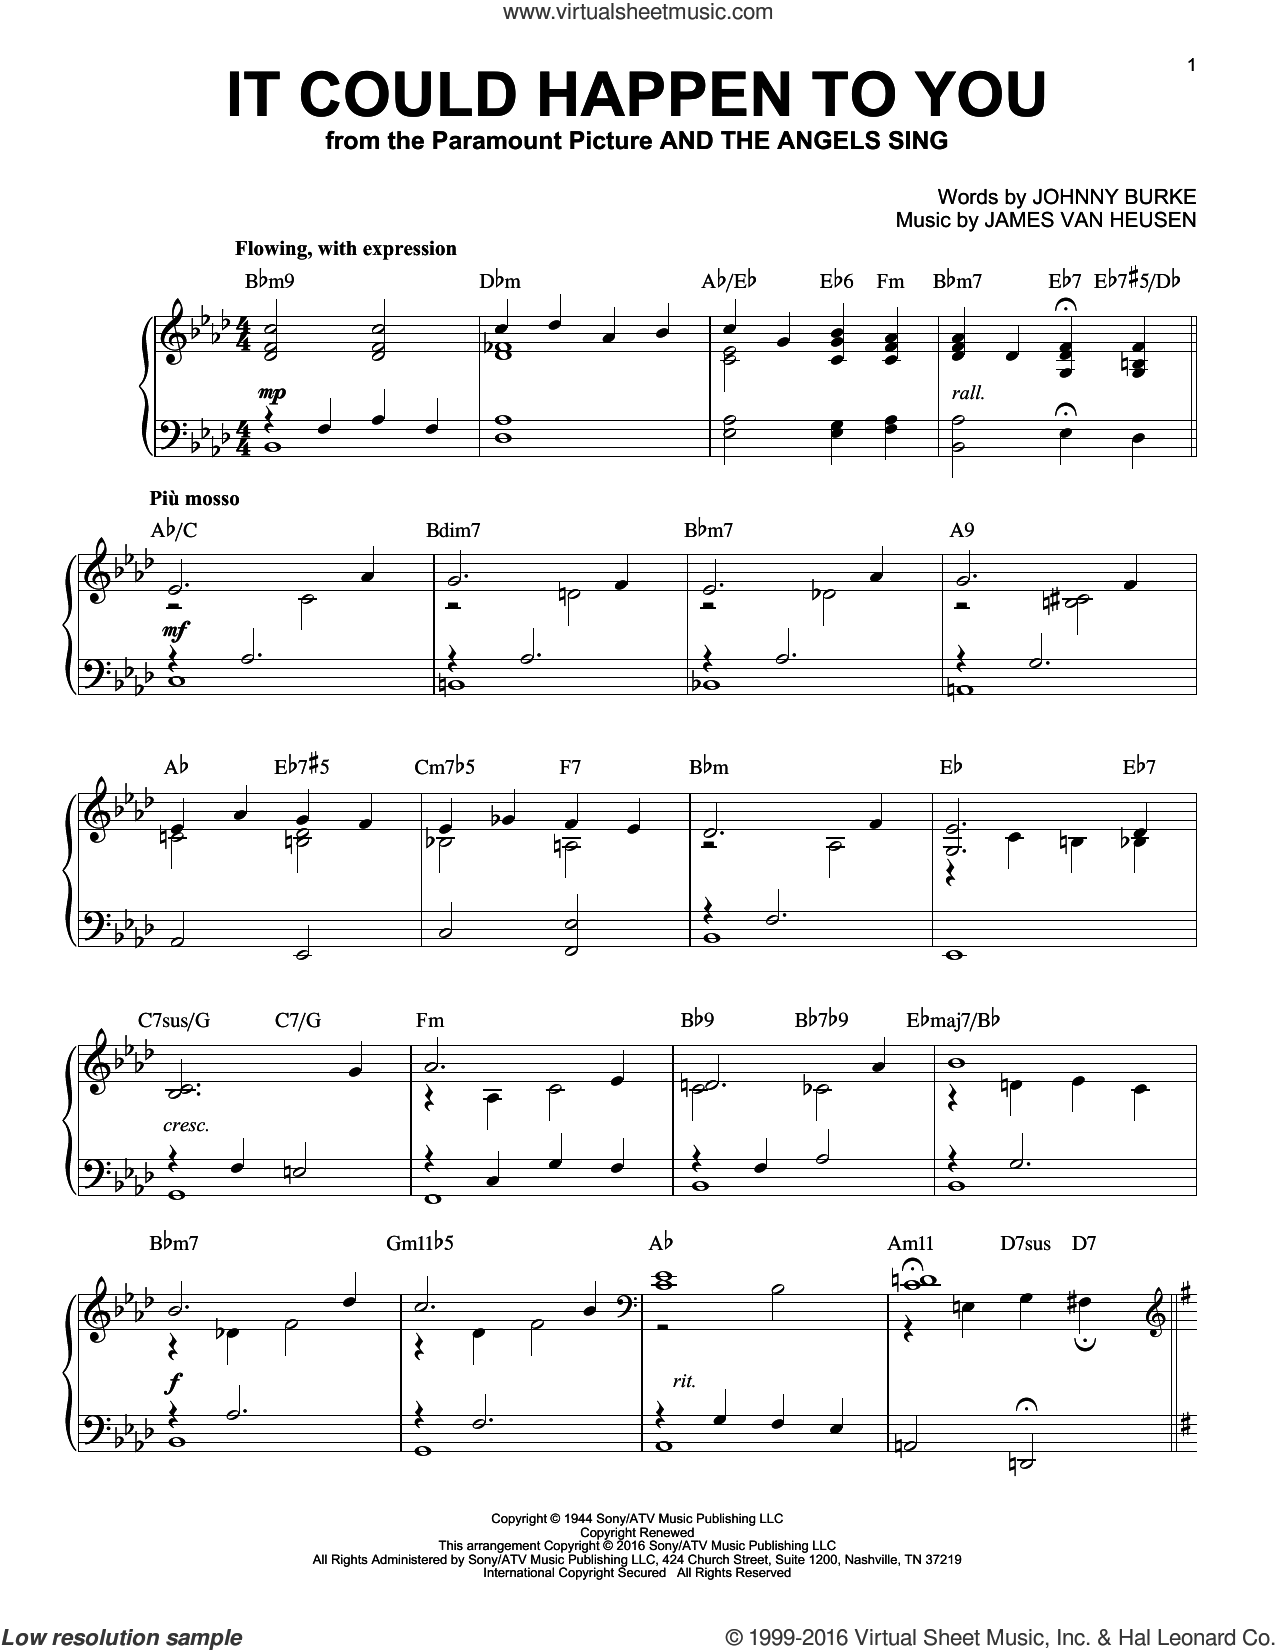 It Could Happen To You sheet music for piano solo by June Christy, Jimmy van Heusen and John Burke, intermediate skill level